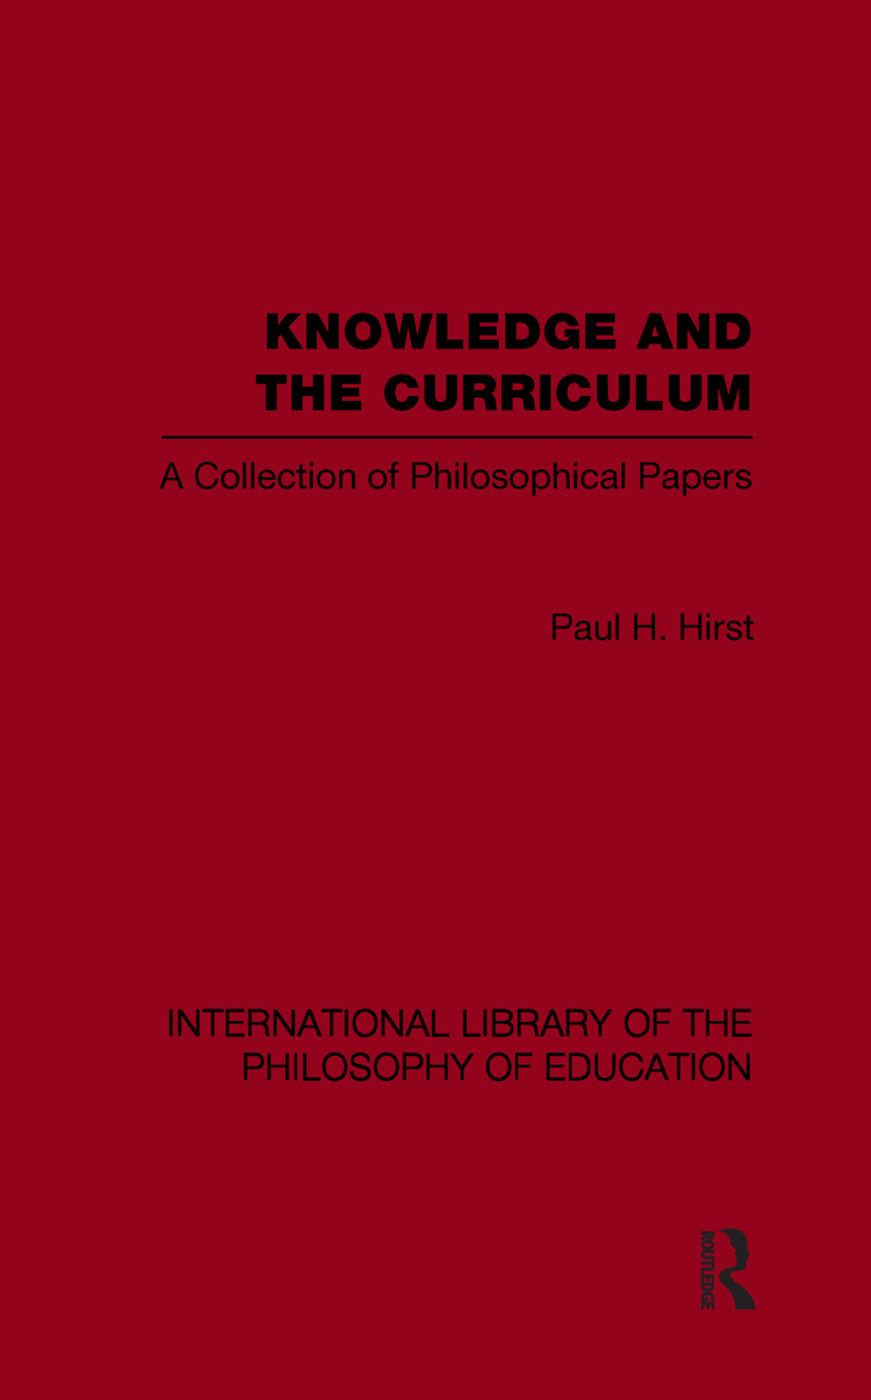 Knowledge and the Curriculum (International Library of the Philosophy of Education Volume 12)